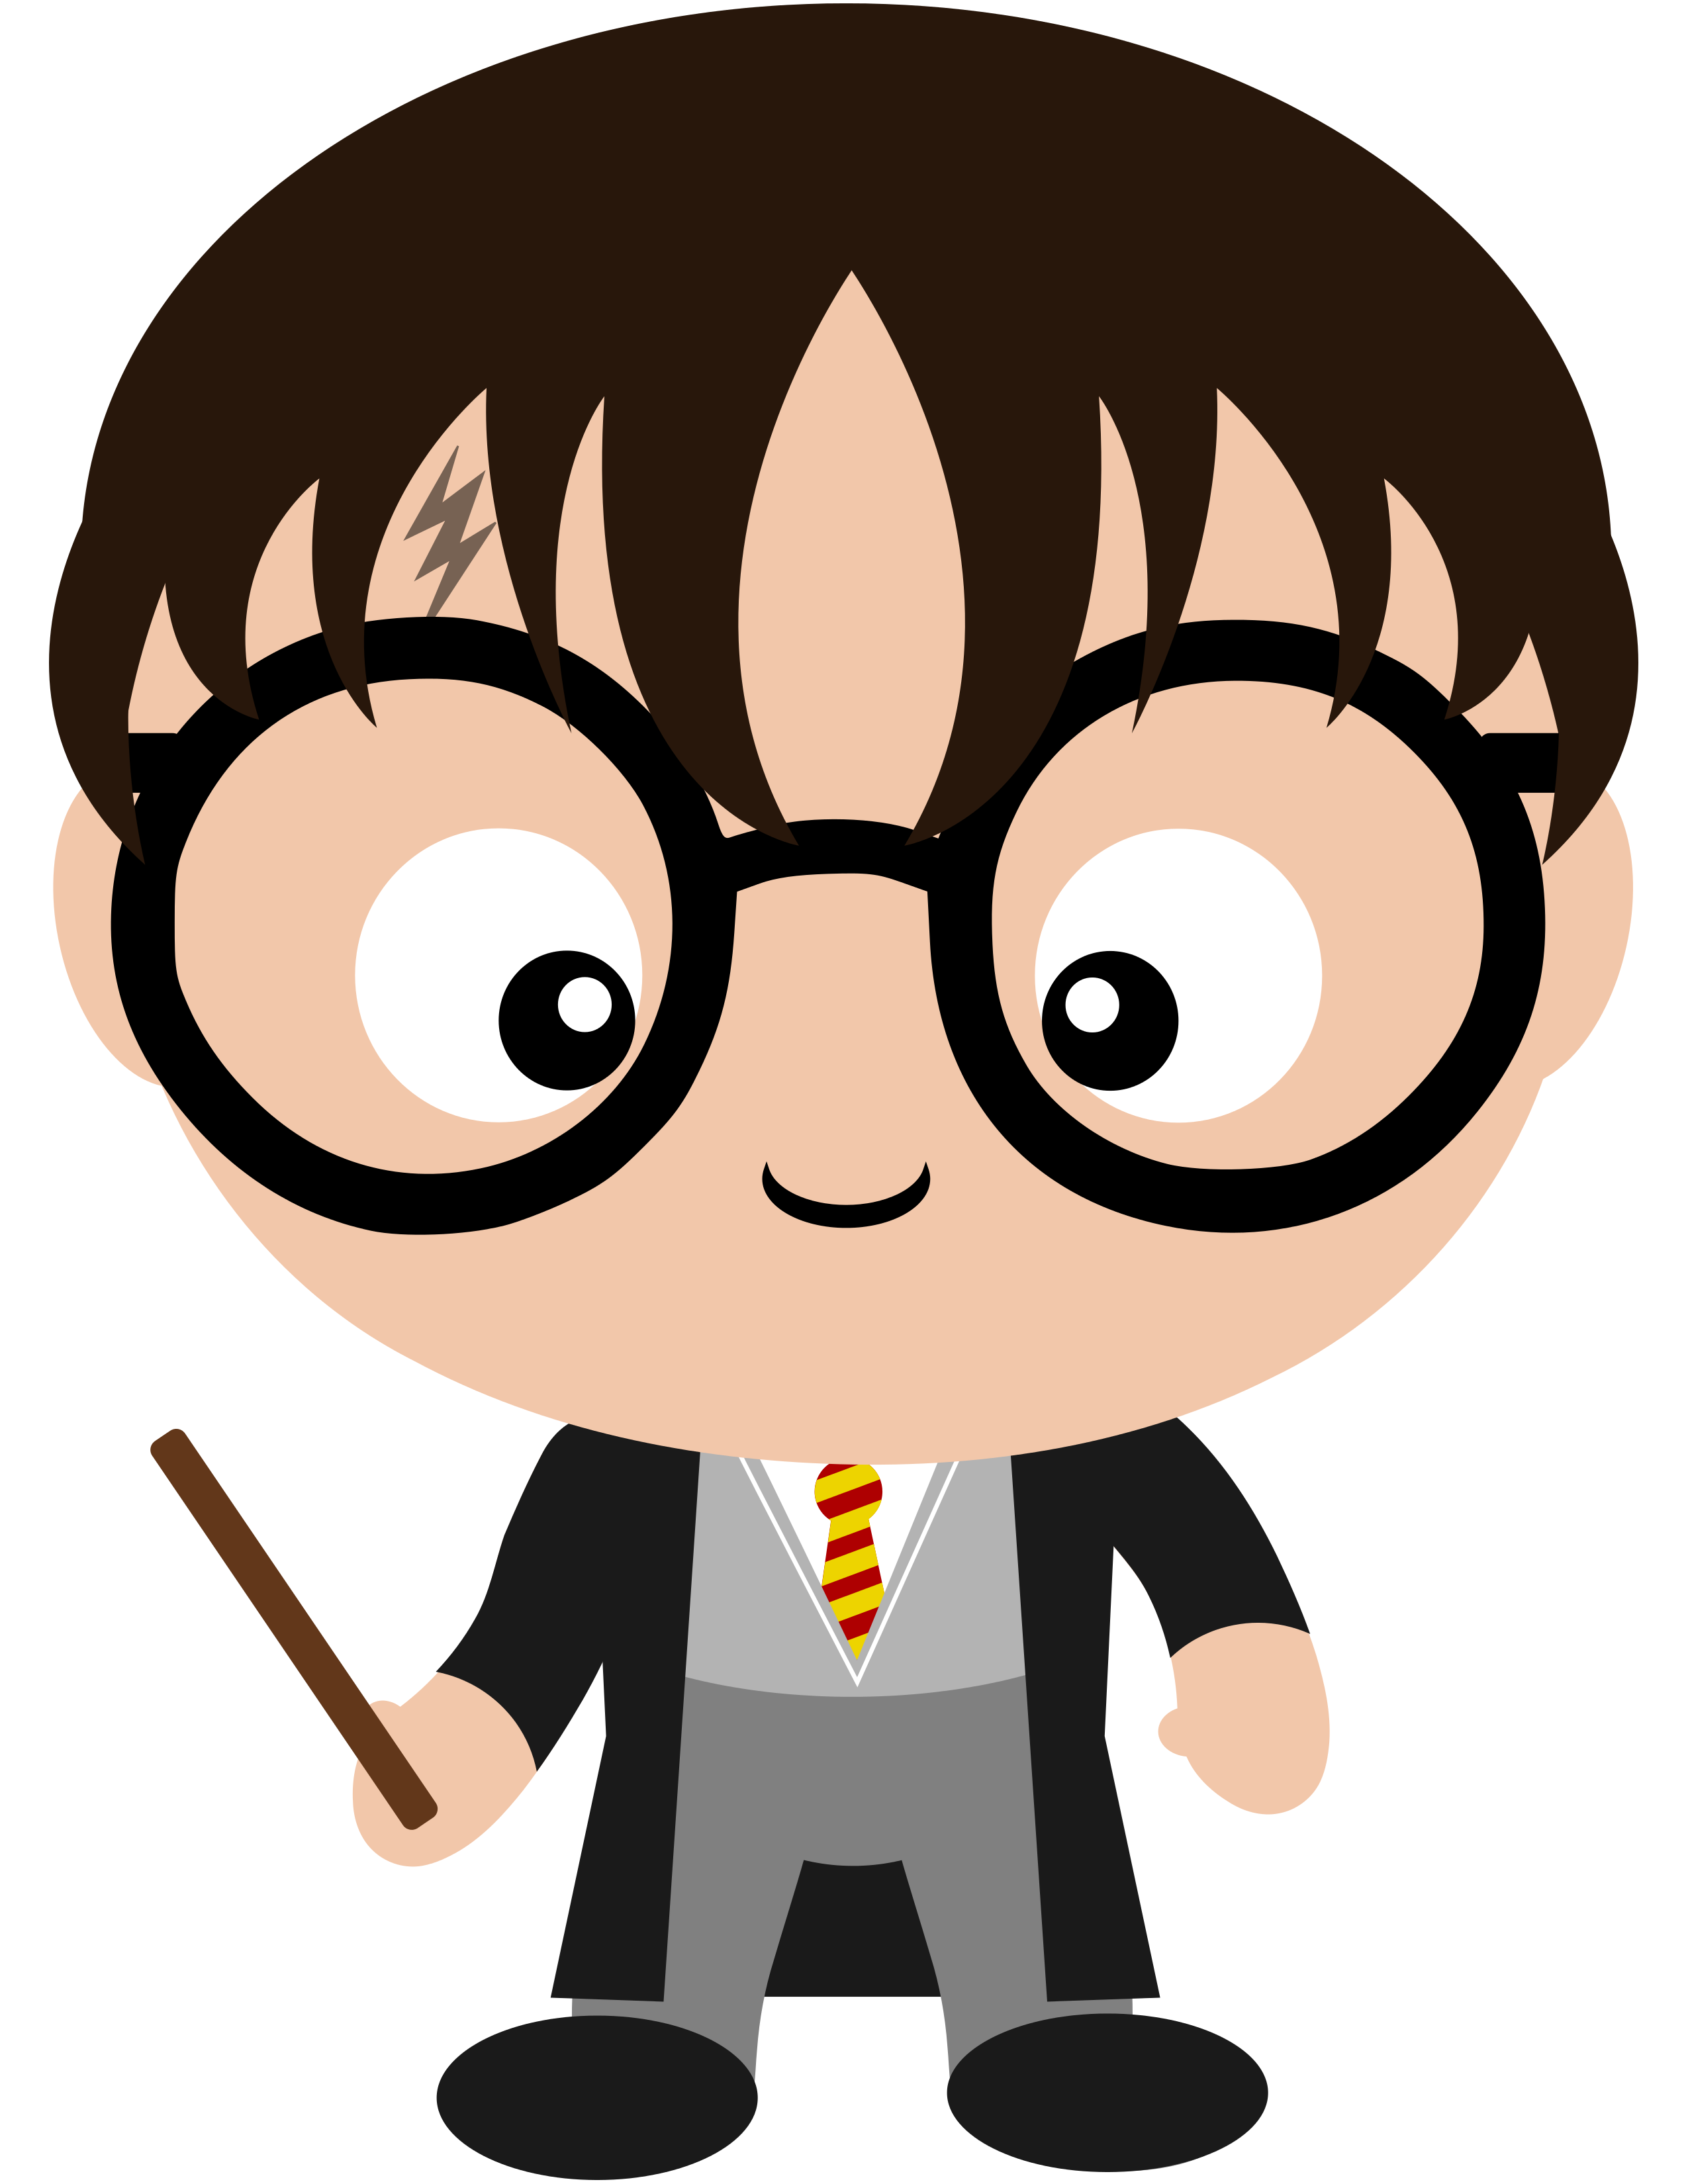 Barber clipart animated. Harry potter preview